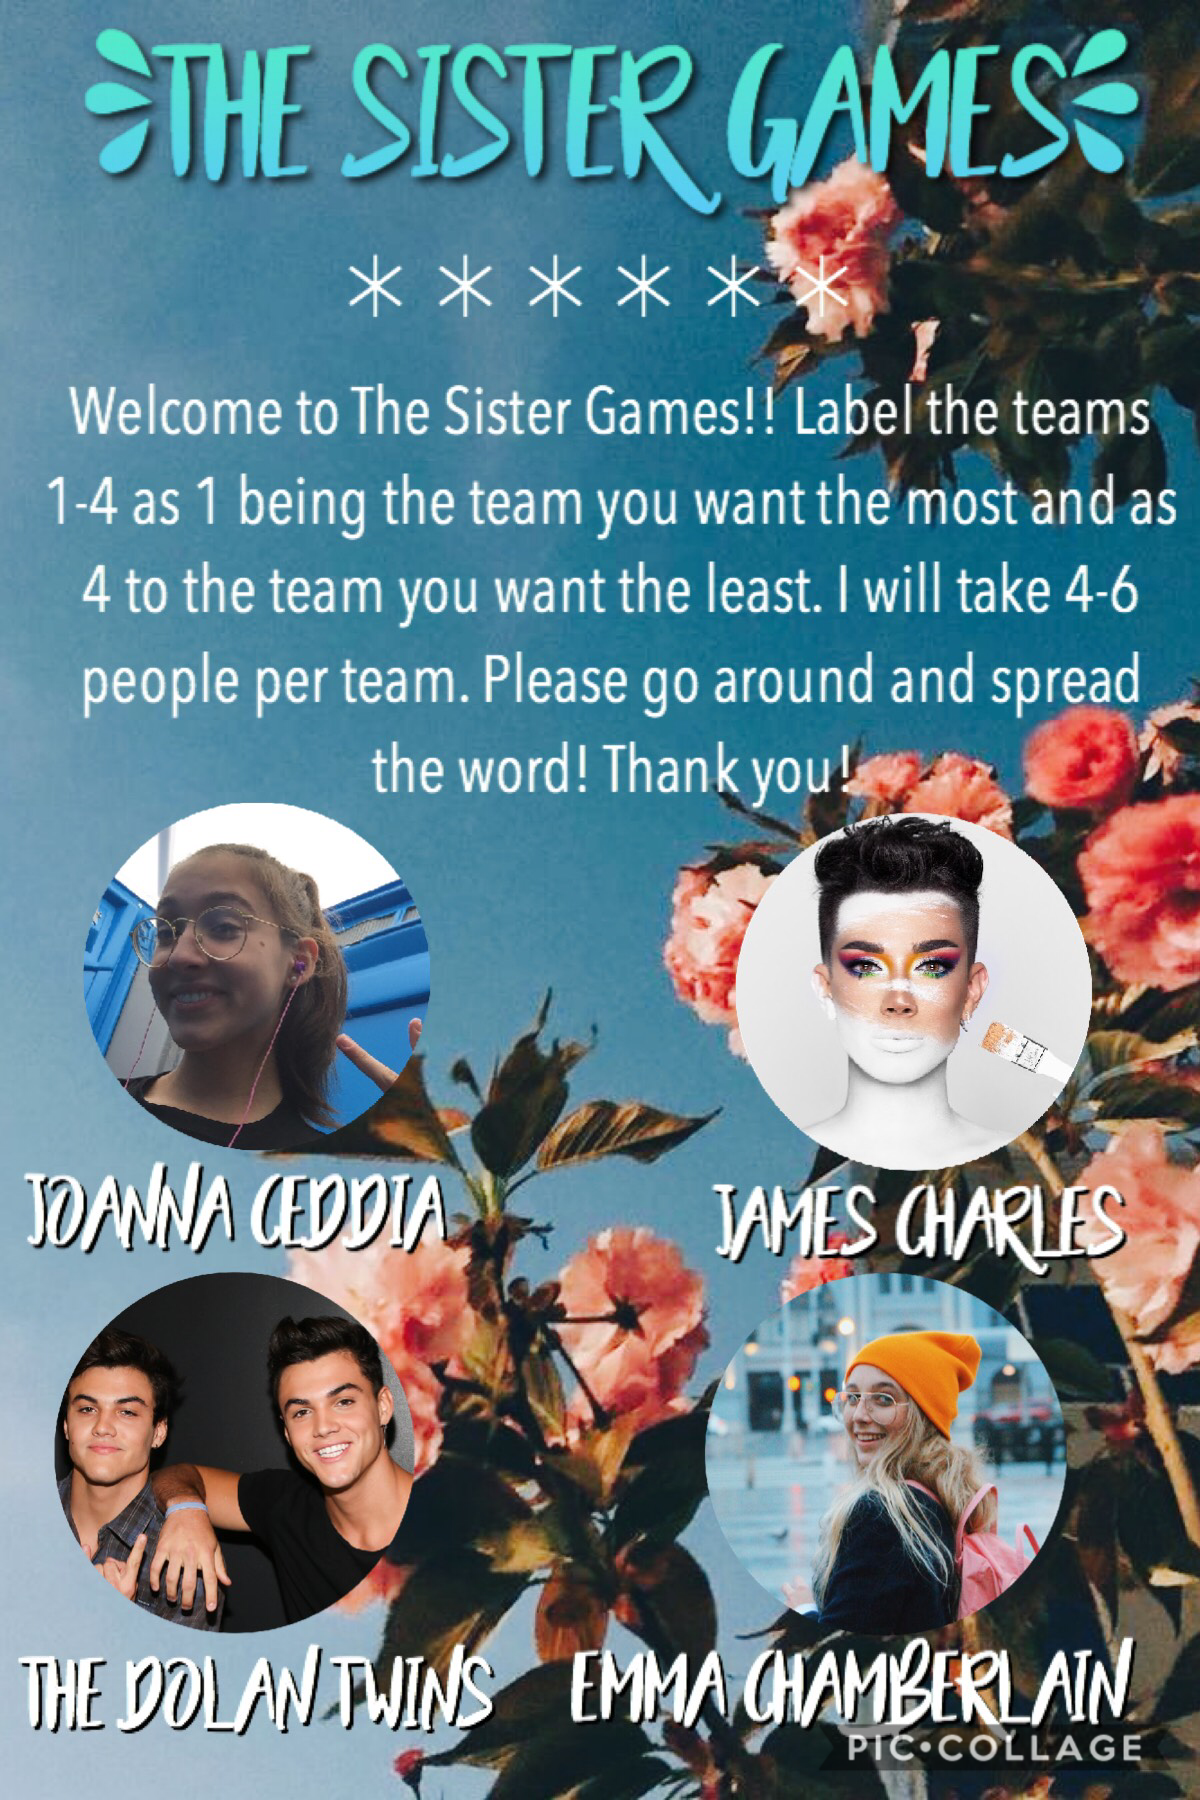 TᕼE ᔕIᔕTEᖇ GᗩᗰEᔕ Please spread the word! i will let everyone know when a team is full. happy collaging!!